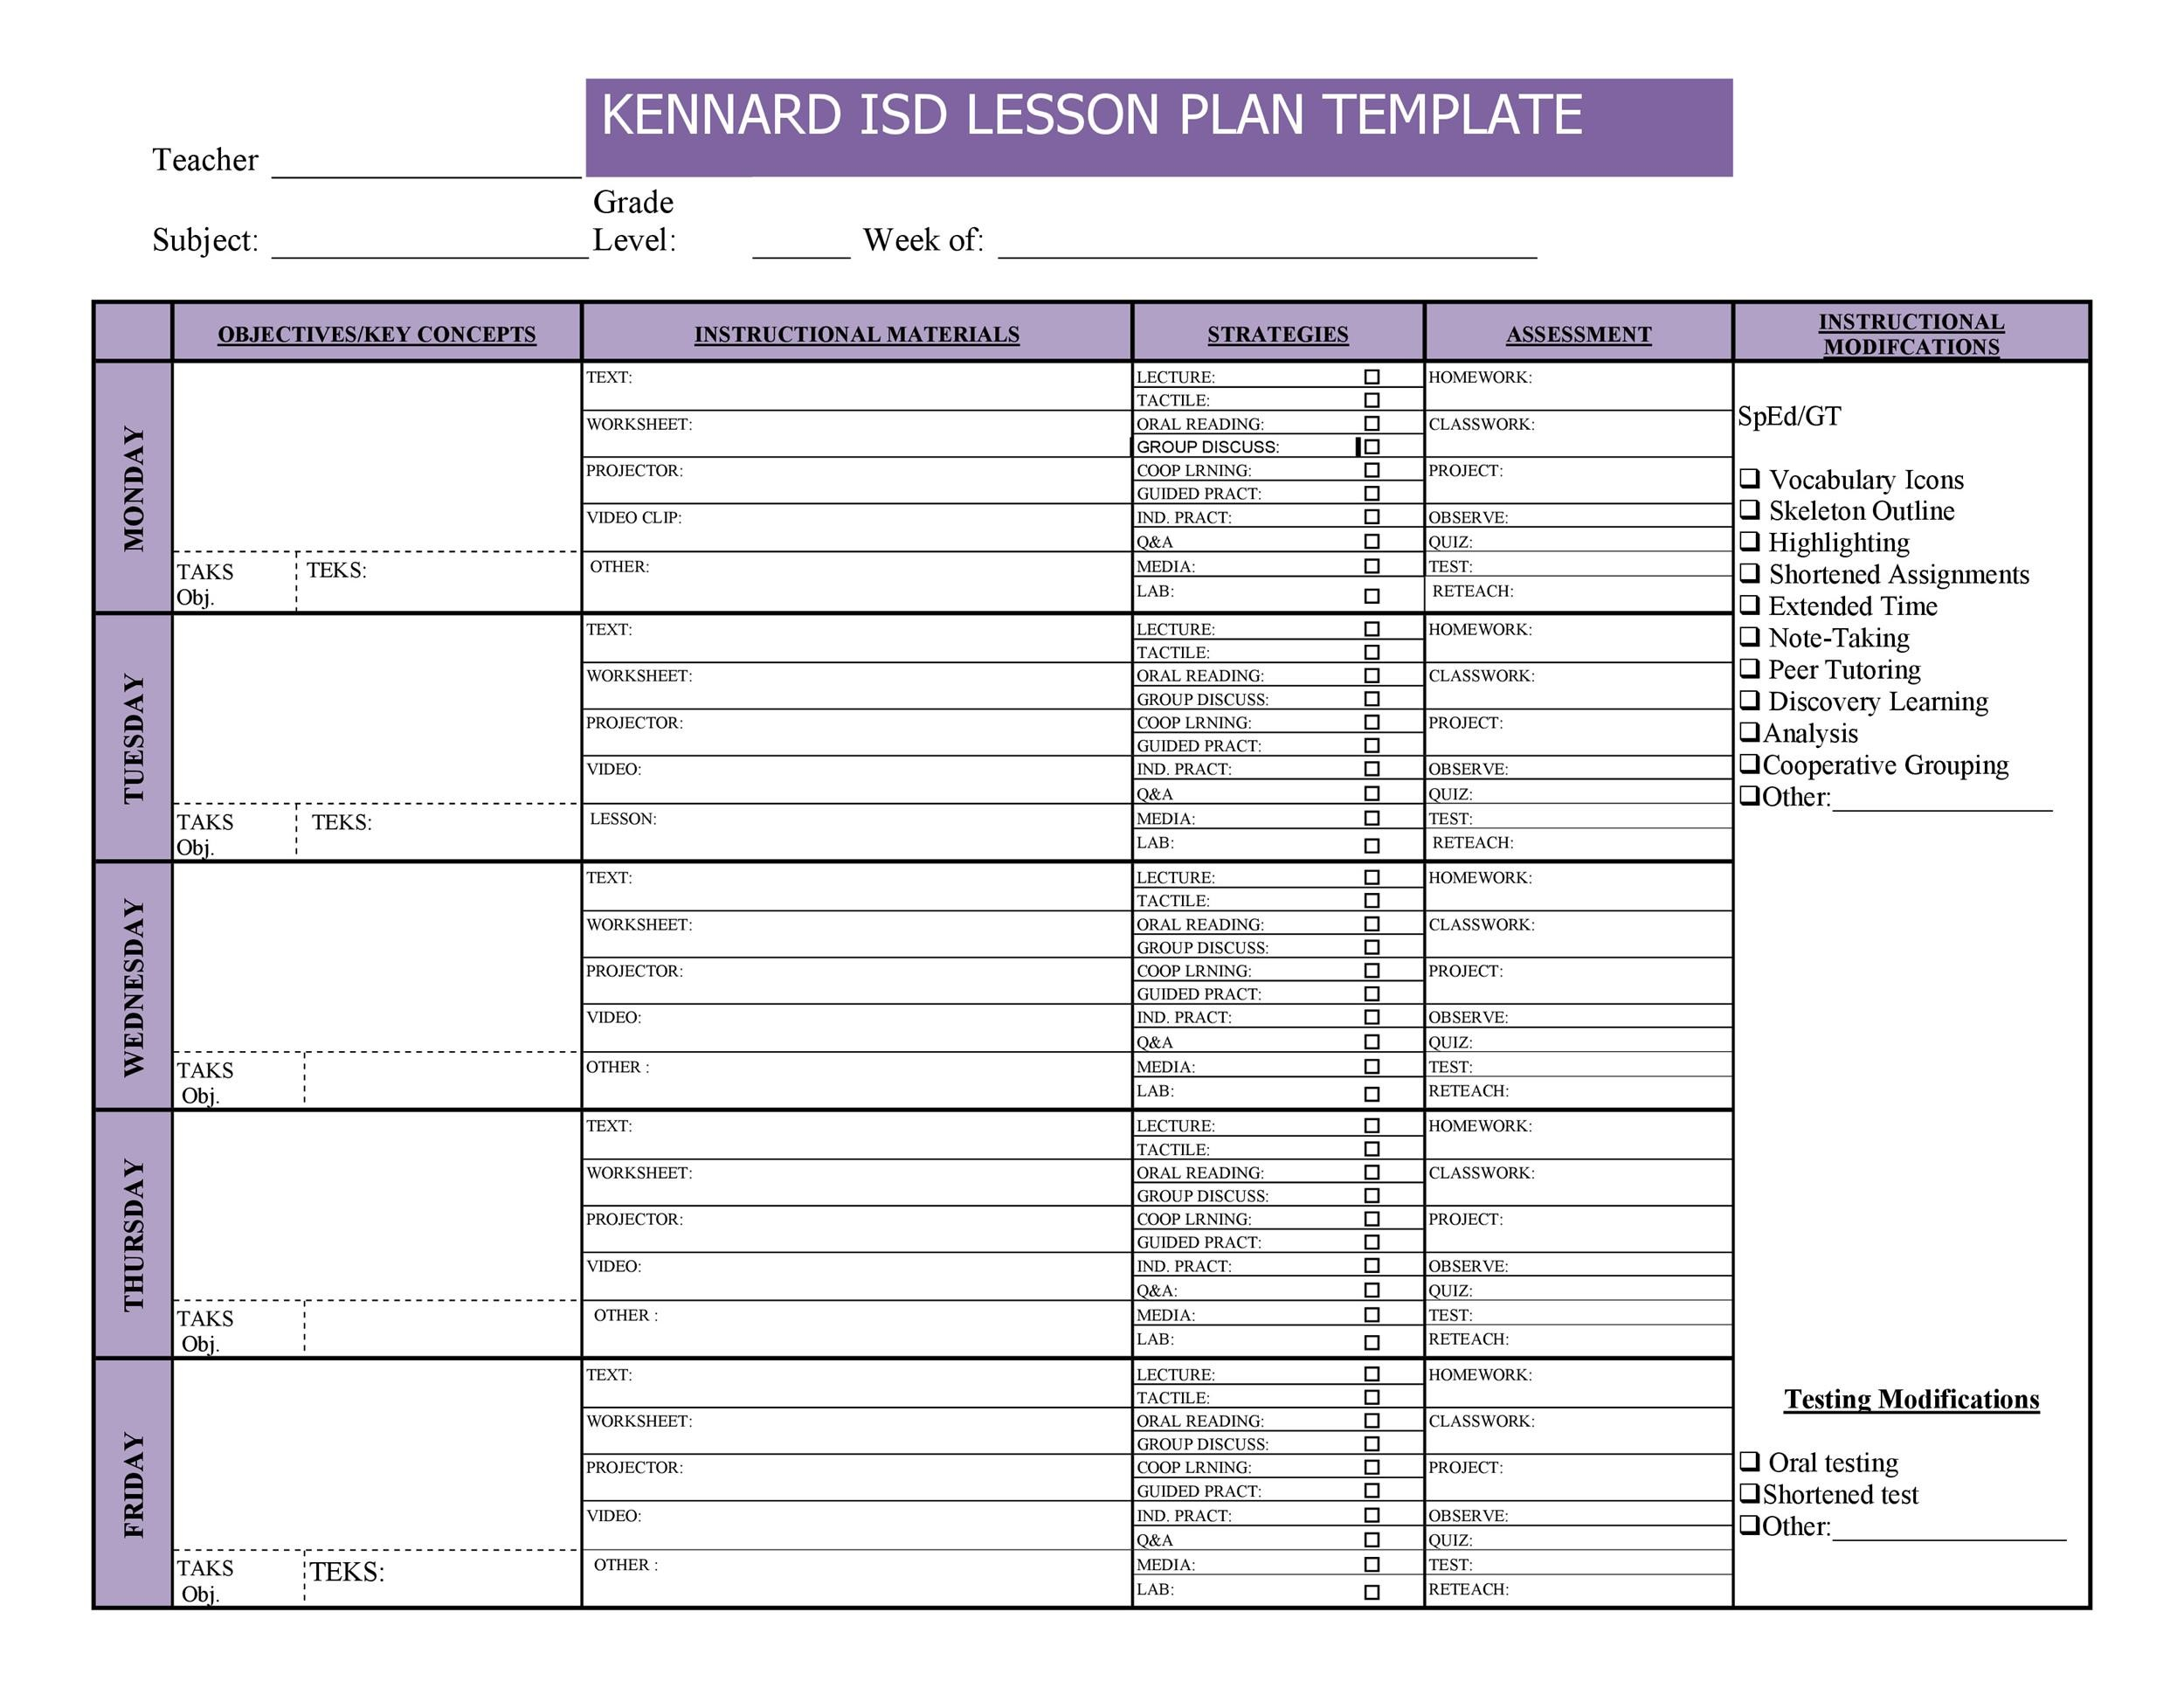 44 FREE Lesson Plan Templates Common Core, Preschool, Weekly - Blank Lesson Plan Template